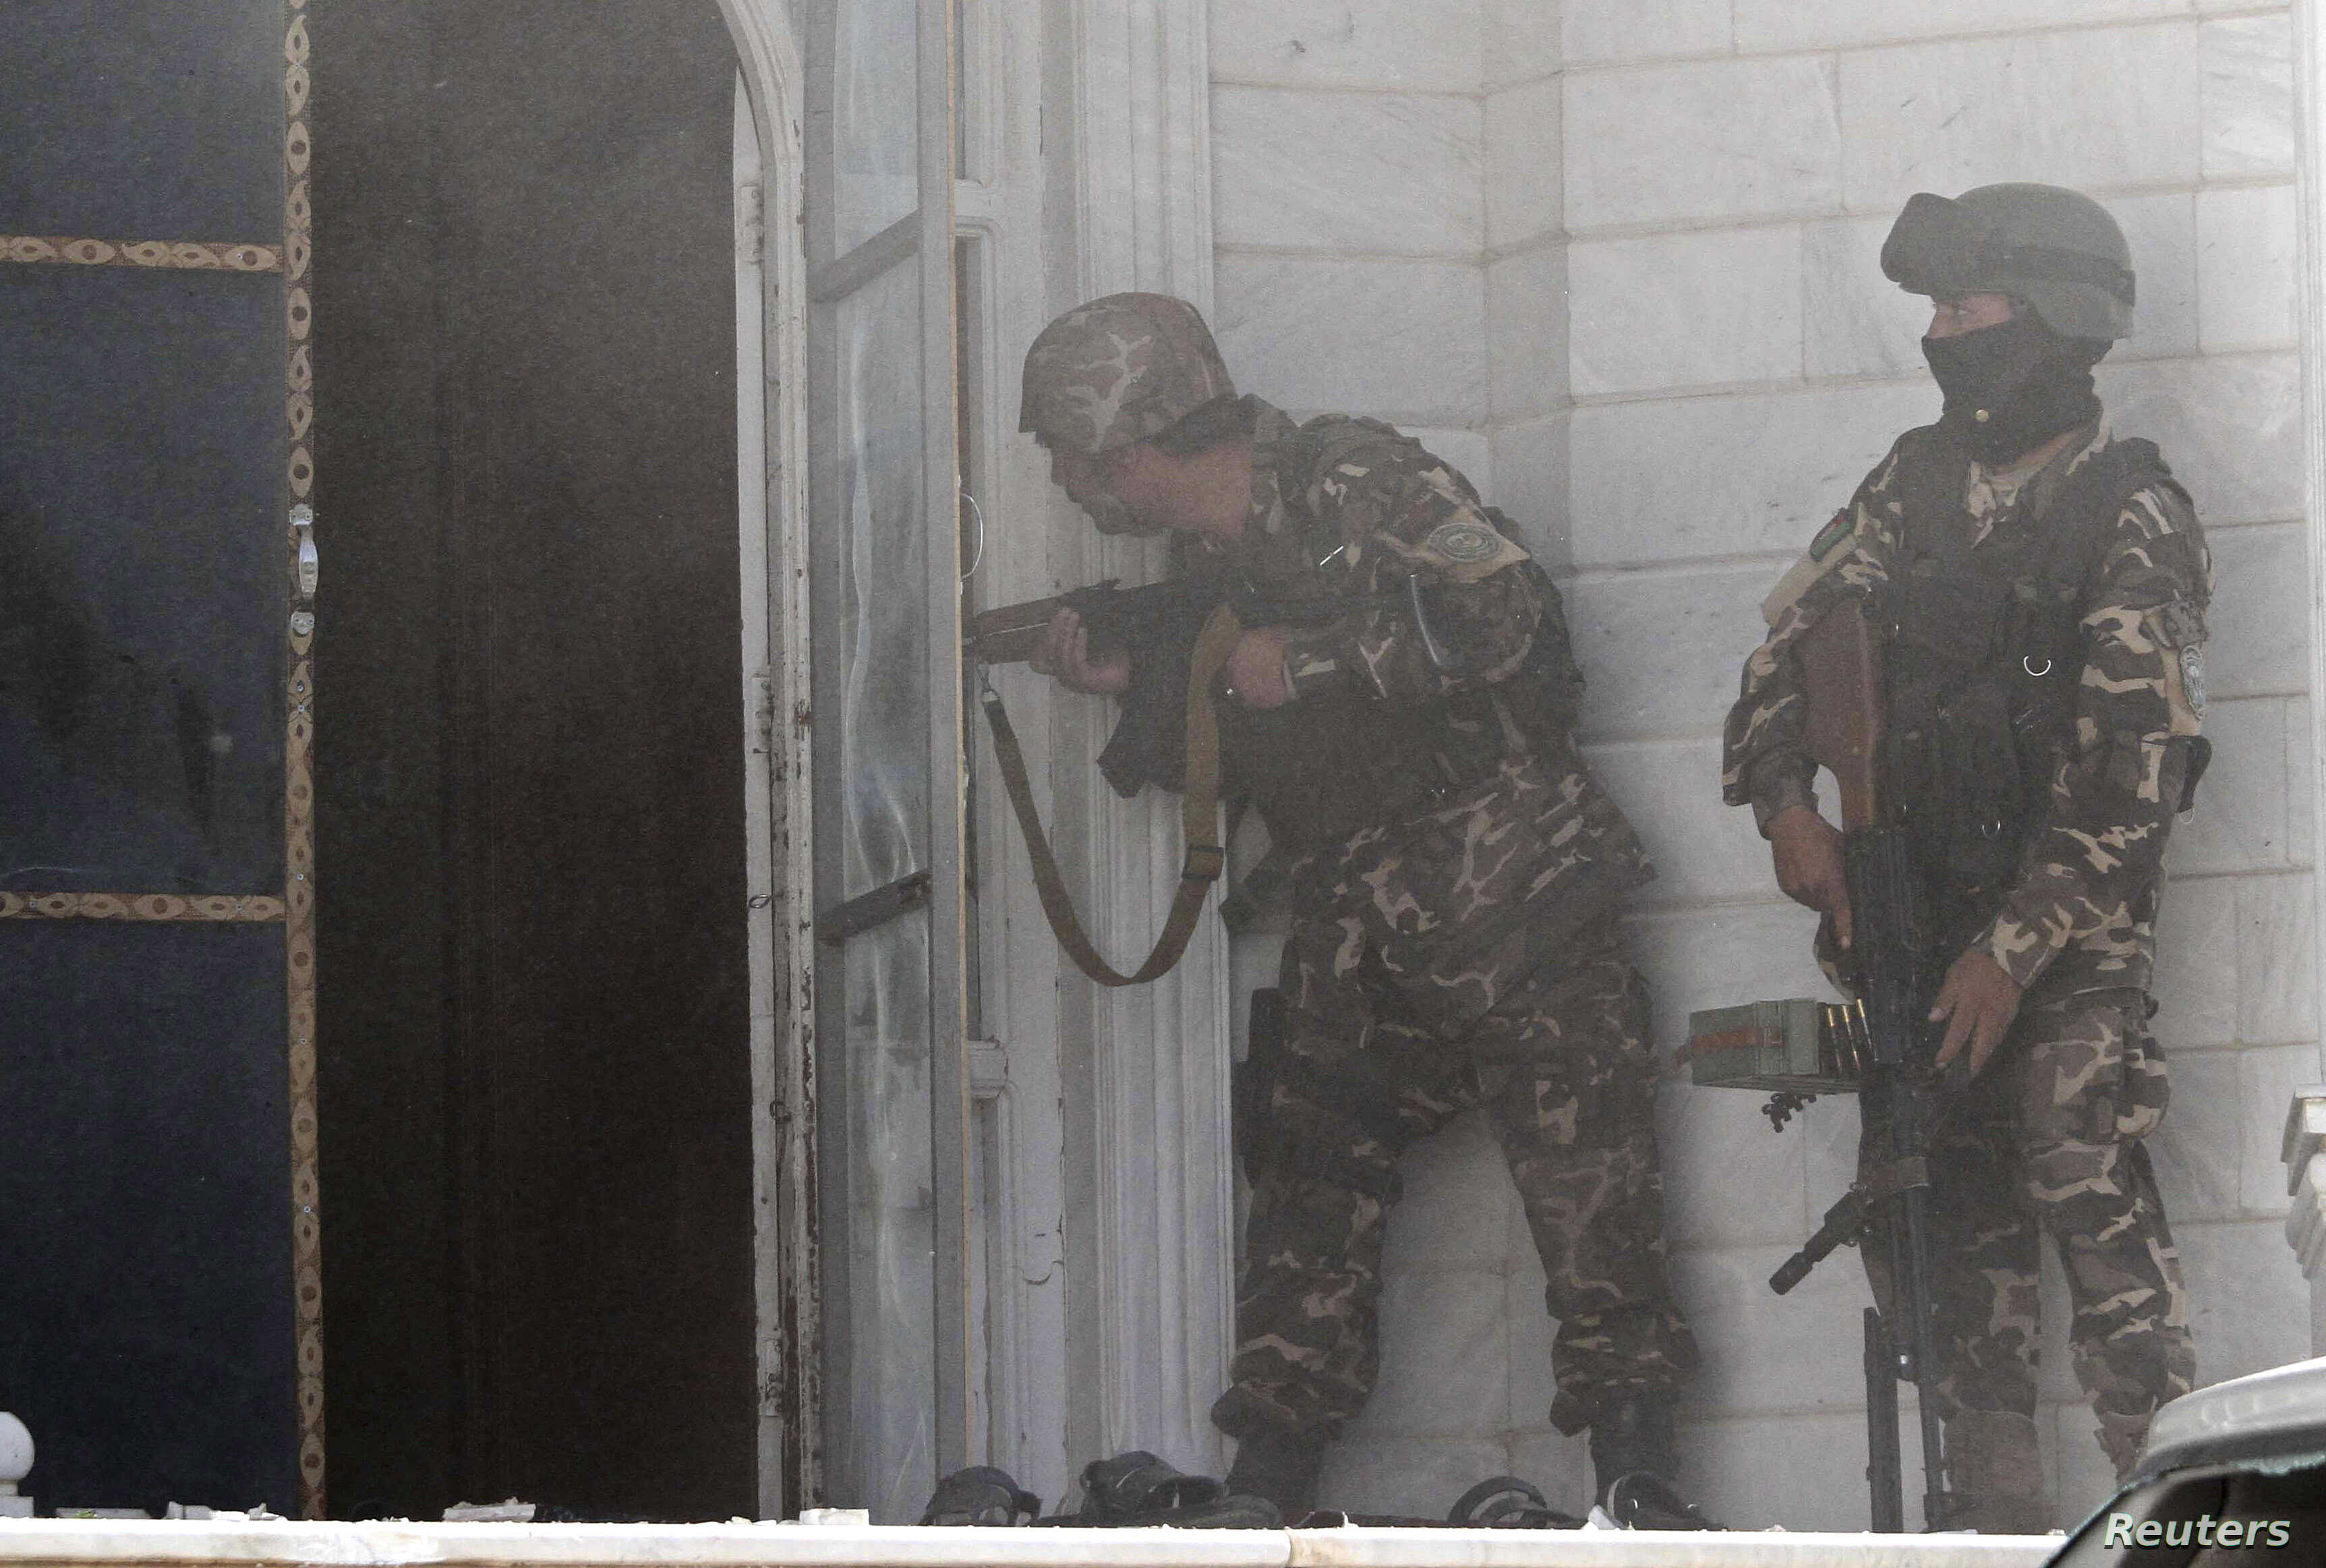 Afghan security forces take position at the scene of an attack on the Indian consulate in Herat province, May 23, 2014.